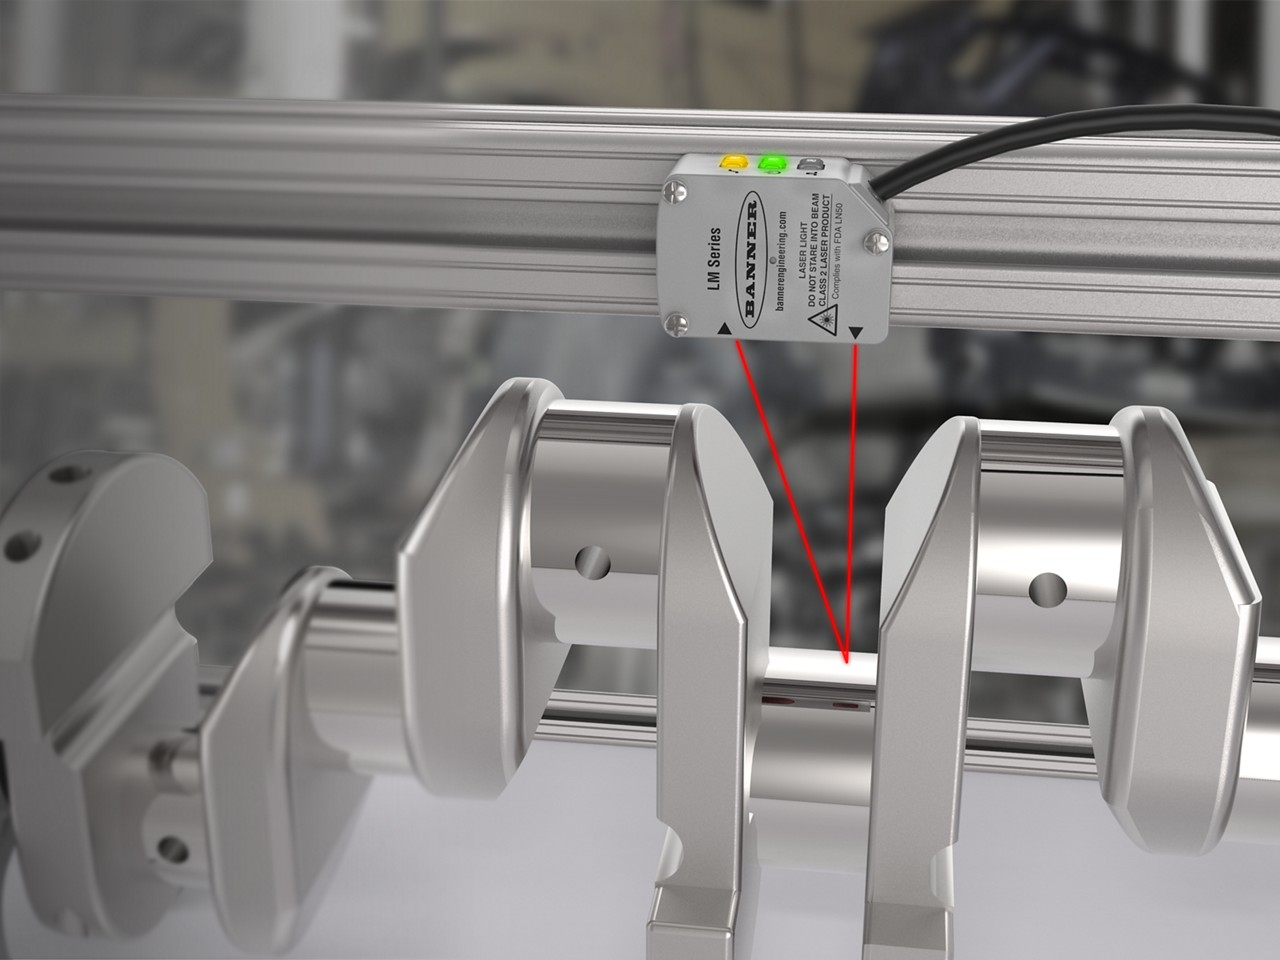 LM Sensor precisely measures crankshaft runout at high speeds